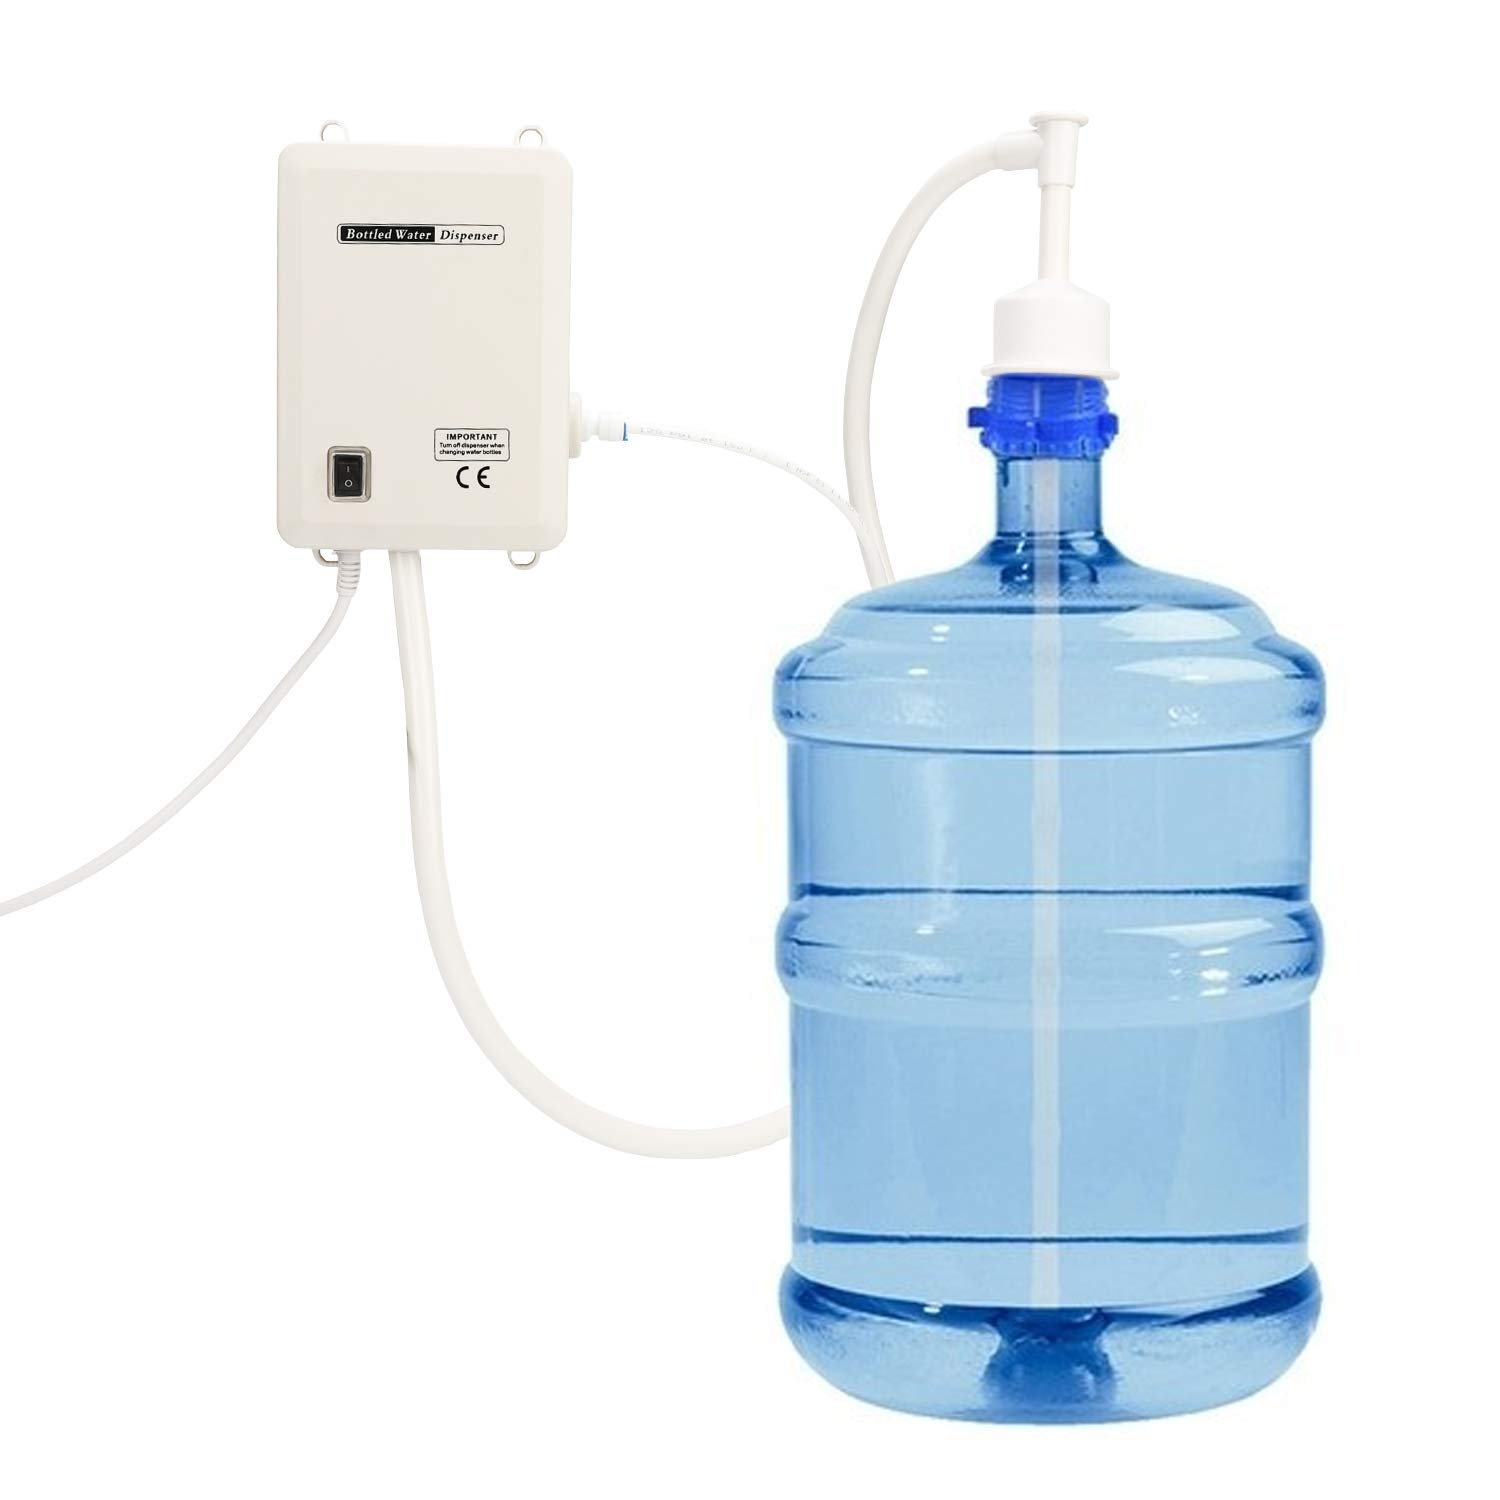 Bottled Water Pump System, Water Dispensing Pump System with Single Inlet 110V AC US Plug Compatible Use with Coffee/Tea Machines, Water Dispensers, Refrigerators, Ice Makers by Miuiui